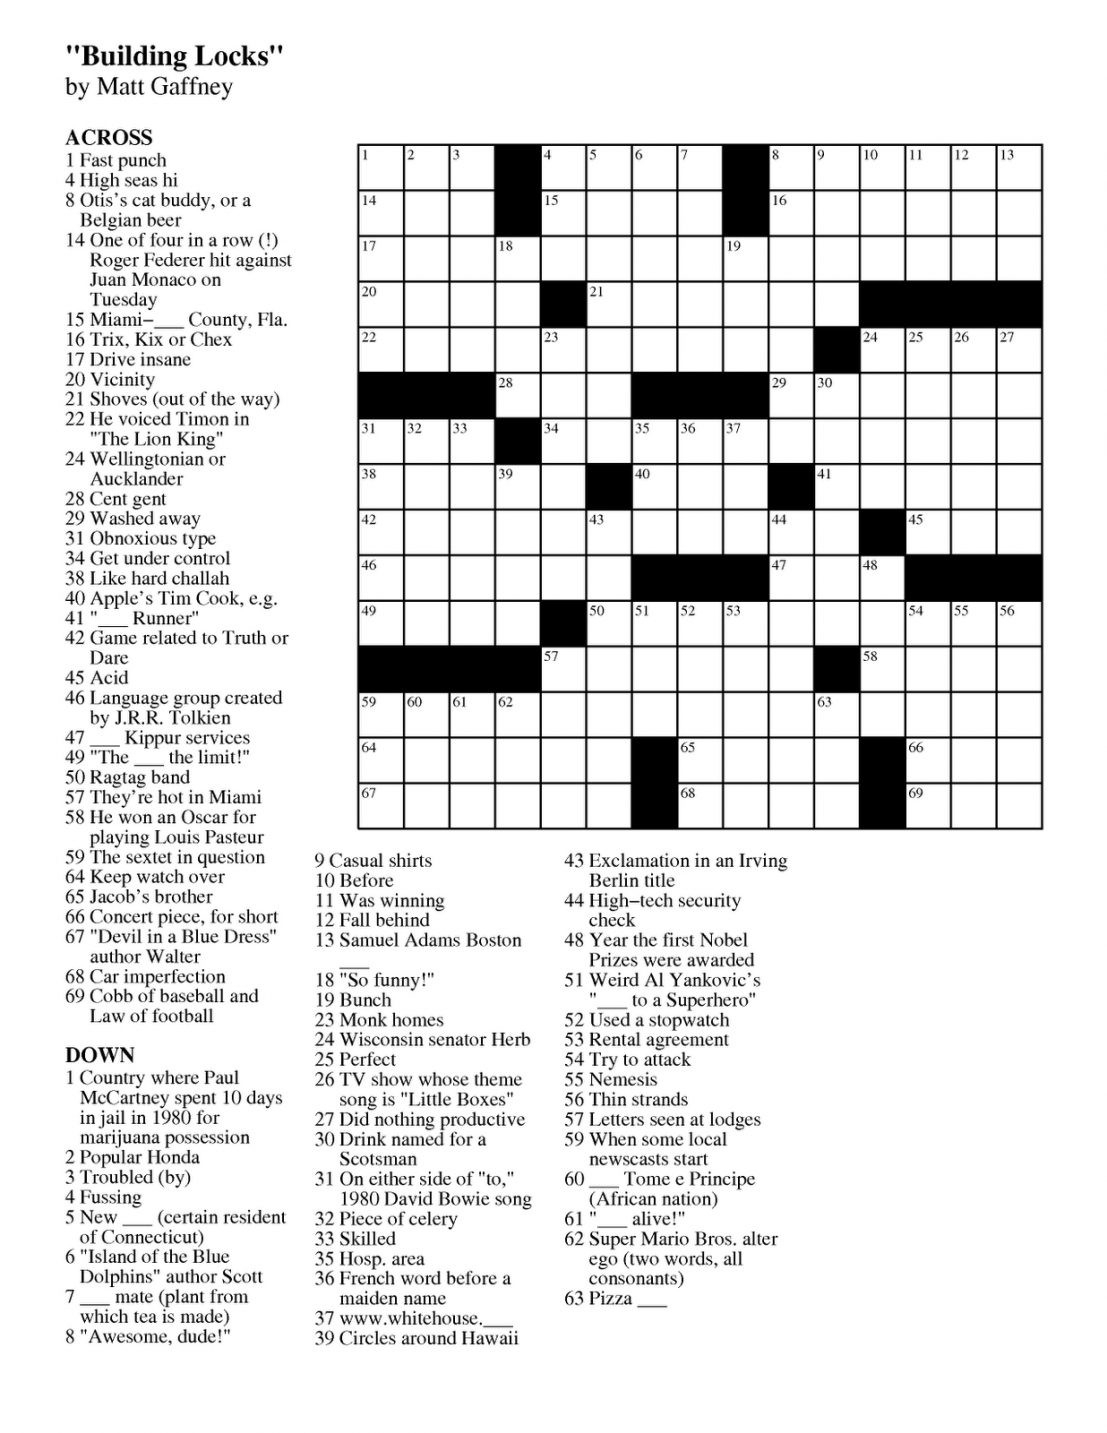 Tools Atozteacherstuff Freetable Crossword Puzzle Maker Easy - Free - Printable Fill In Puzzles Online